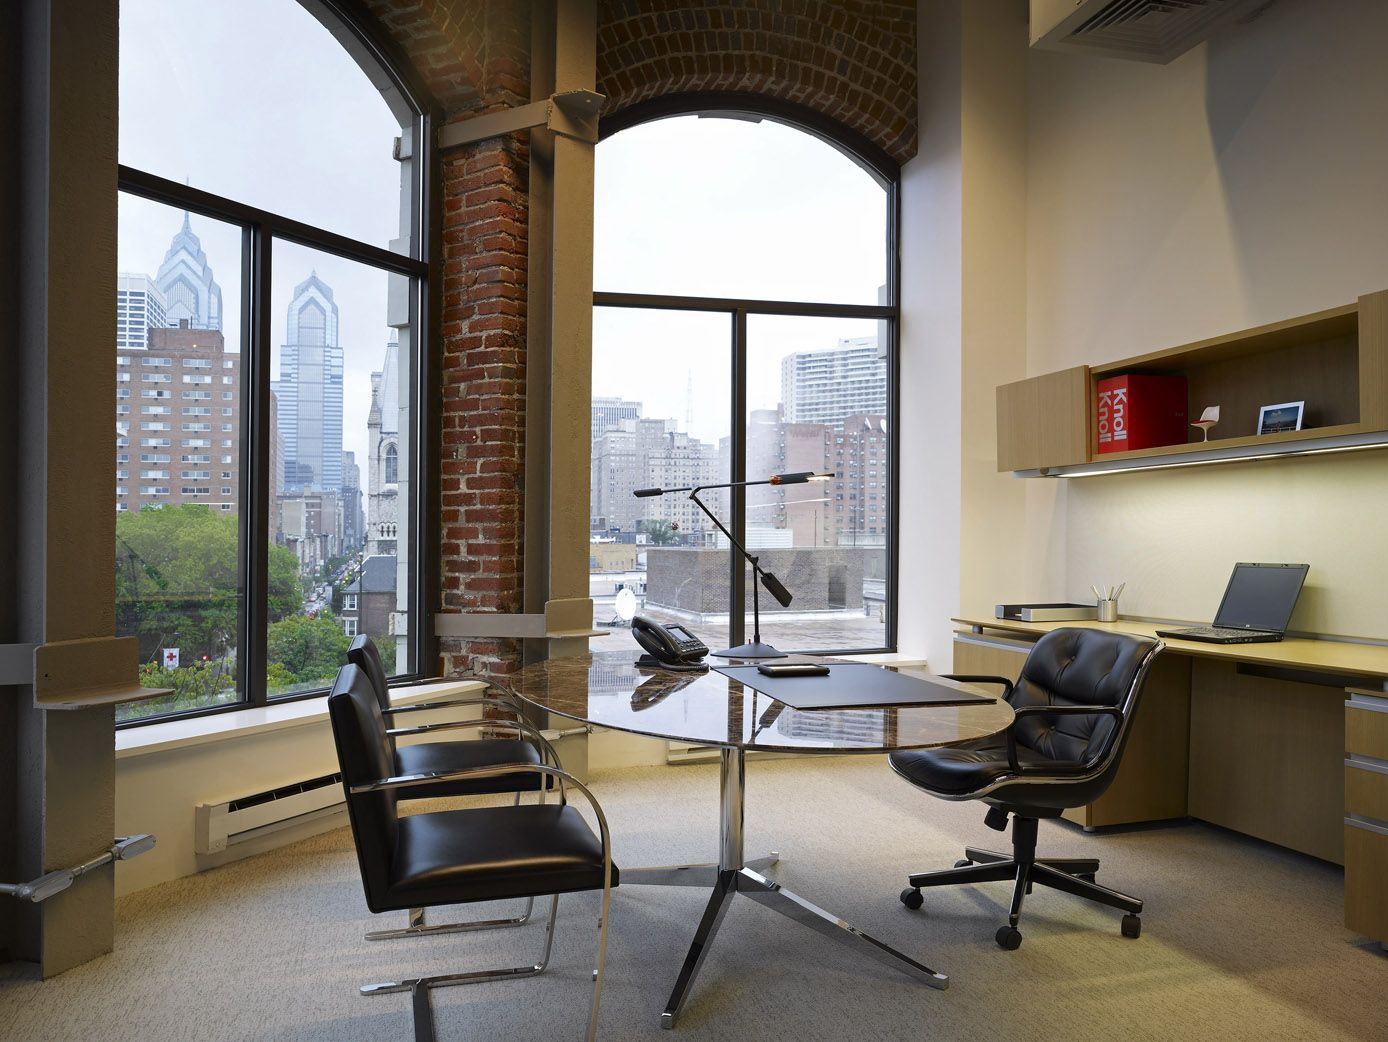 Florence Knoll table, Pollock executive chair, and Flat ...